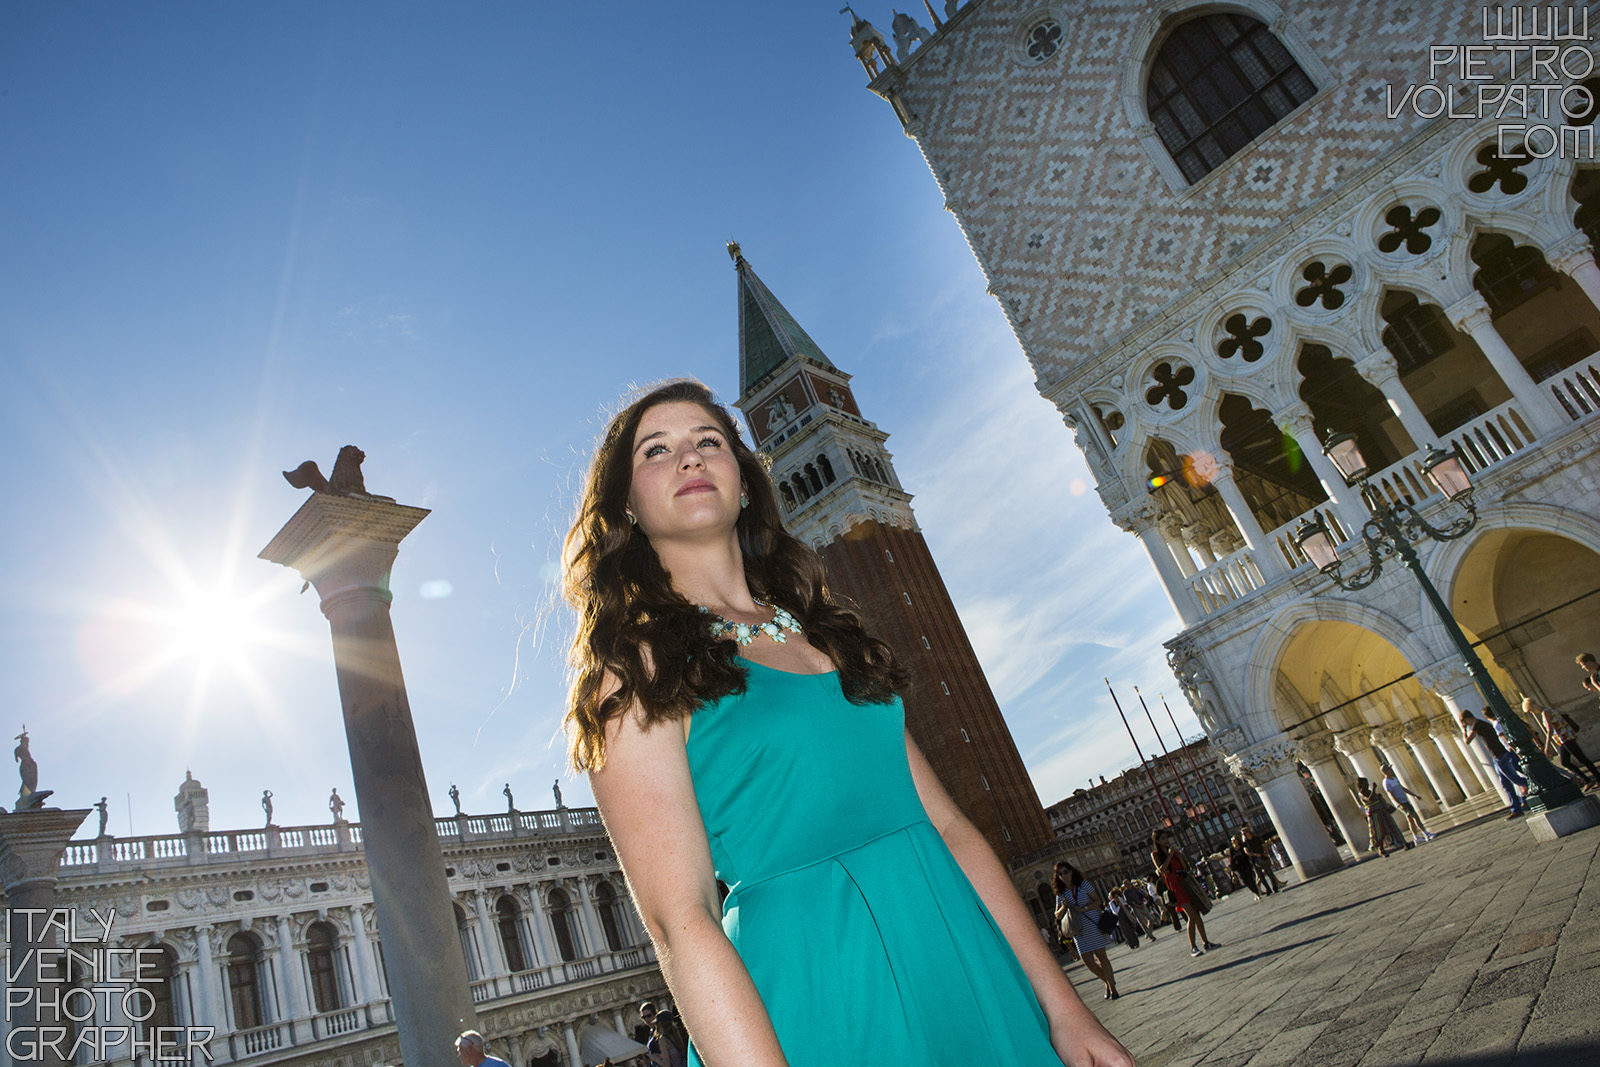 Professional photographer in Venice for senior portrait photography session - fashion photo shoot and tour in Venice